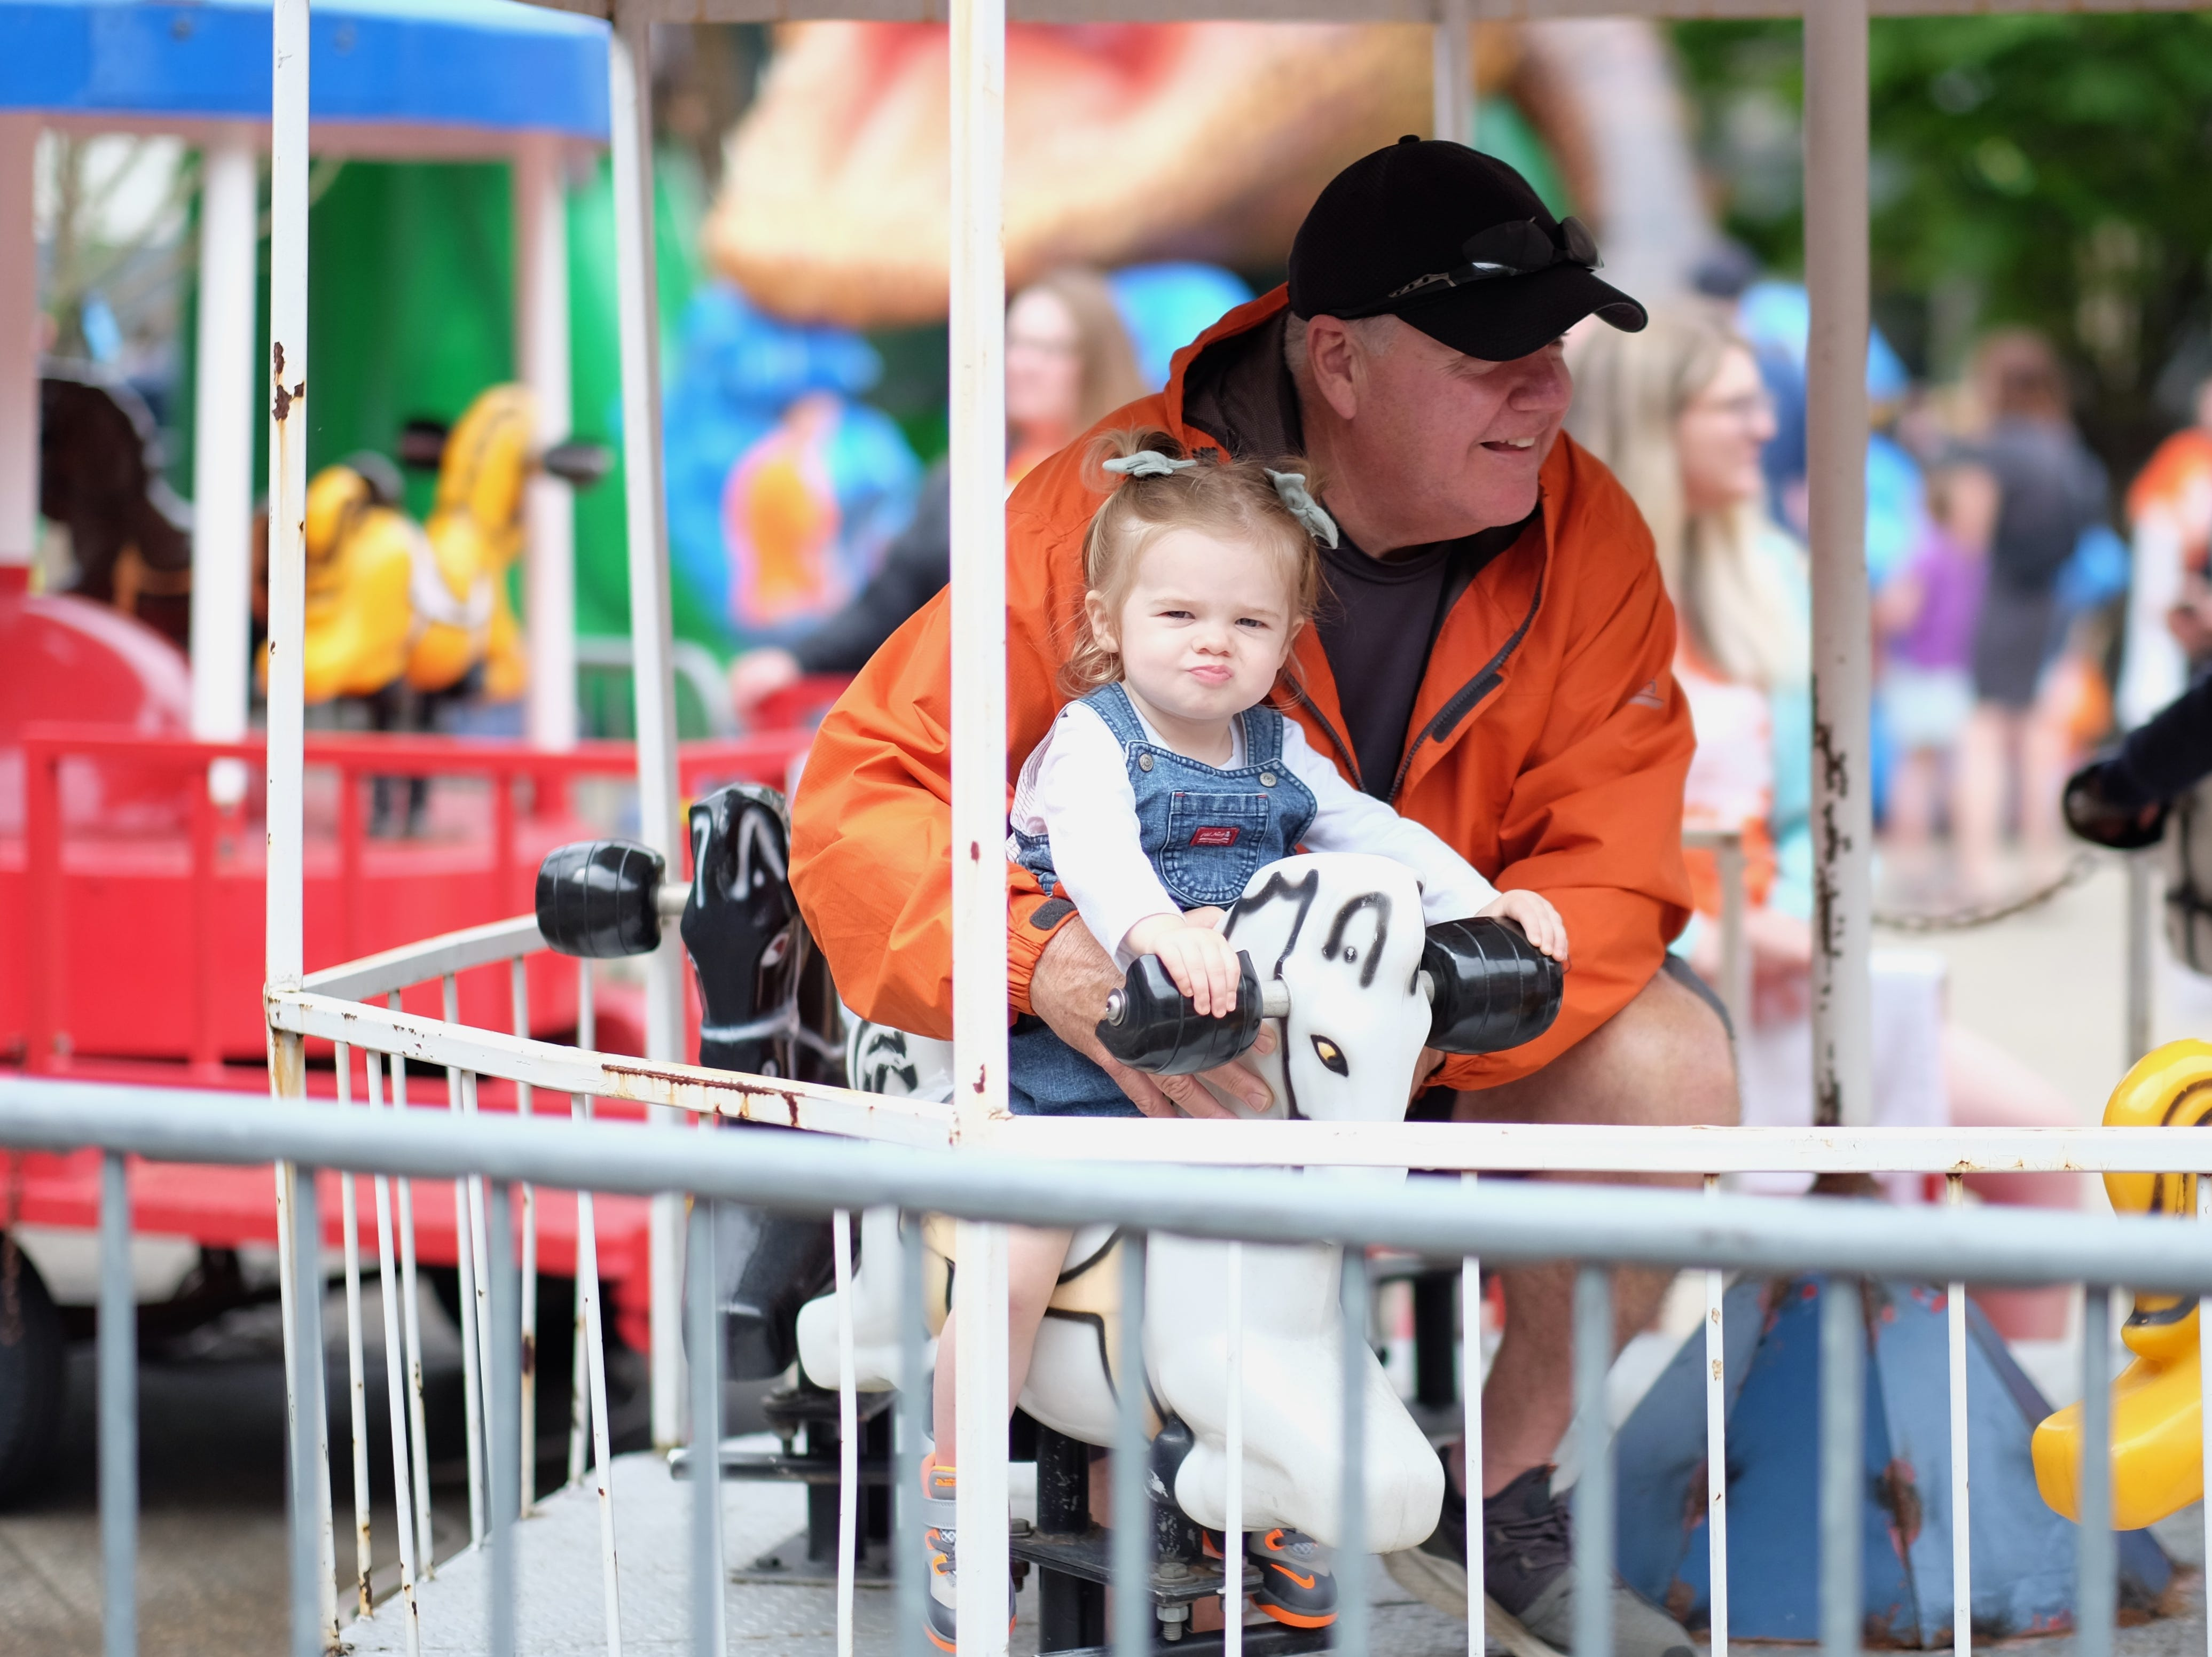 Mike Smith rides the carousel with his granddaughter Halli Smith, 1, during the Rossini Festival in Knoxville on Saturday, April 13, 2019. (Shawn Millsaps/Special to News Sentinel)